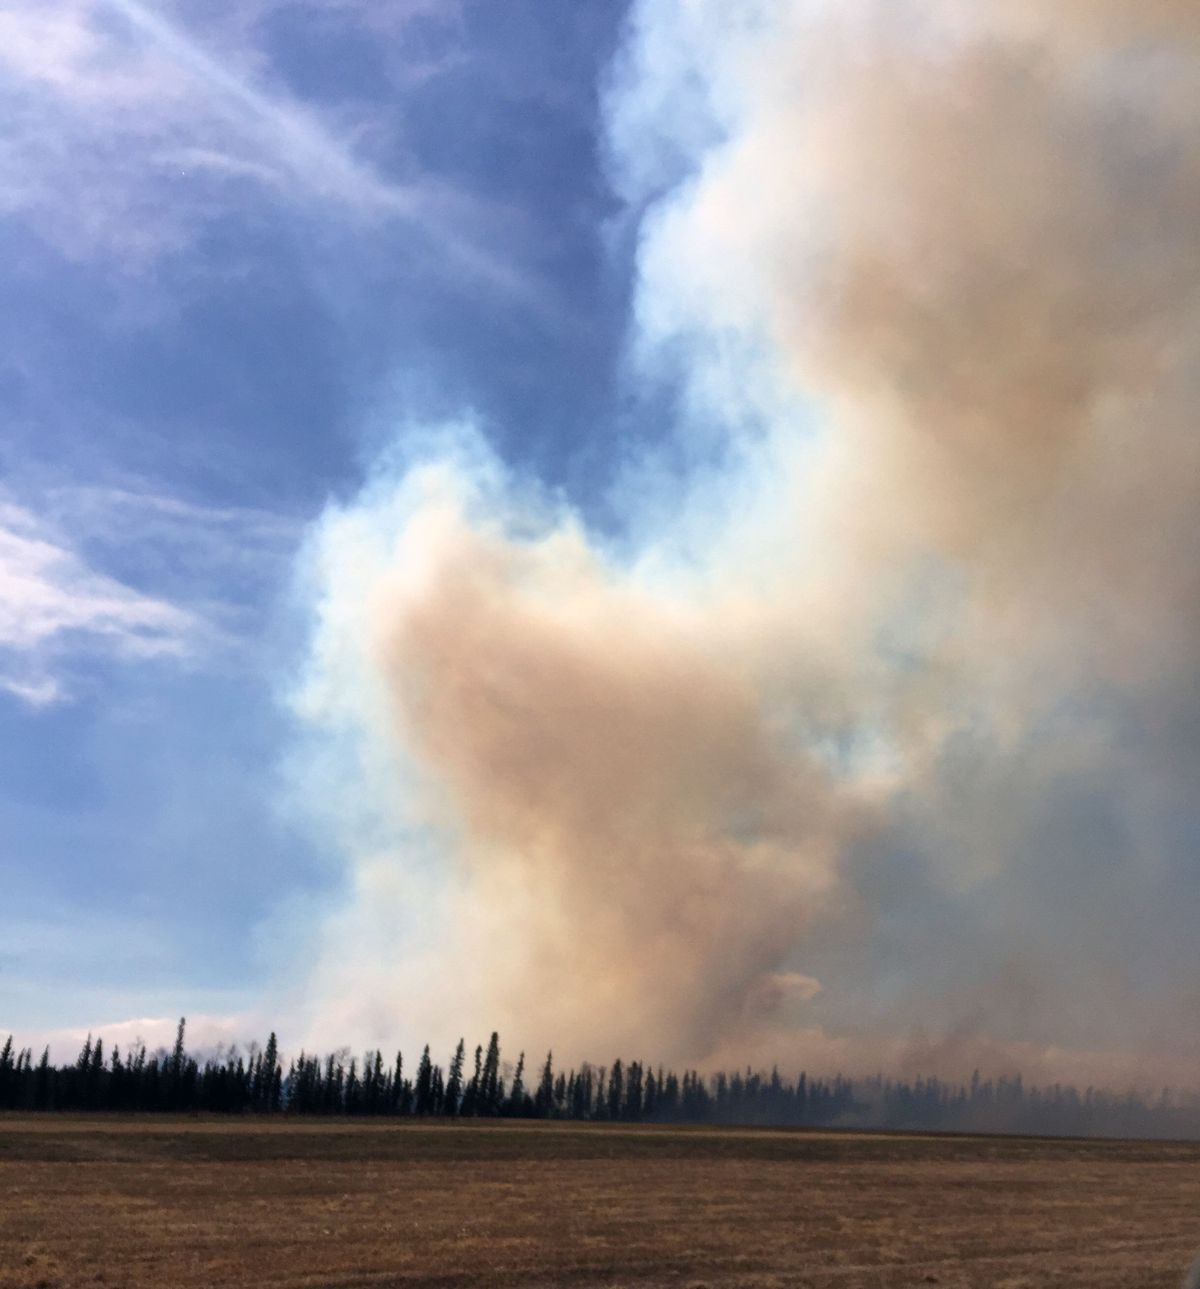 Smoke rises from the North Eielson Fire off Tanana Loop Extension near Delta Junction on May 11, 2018. (Alaska Division of Forestry)